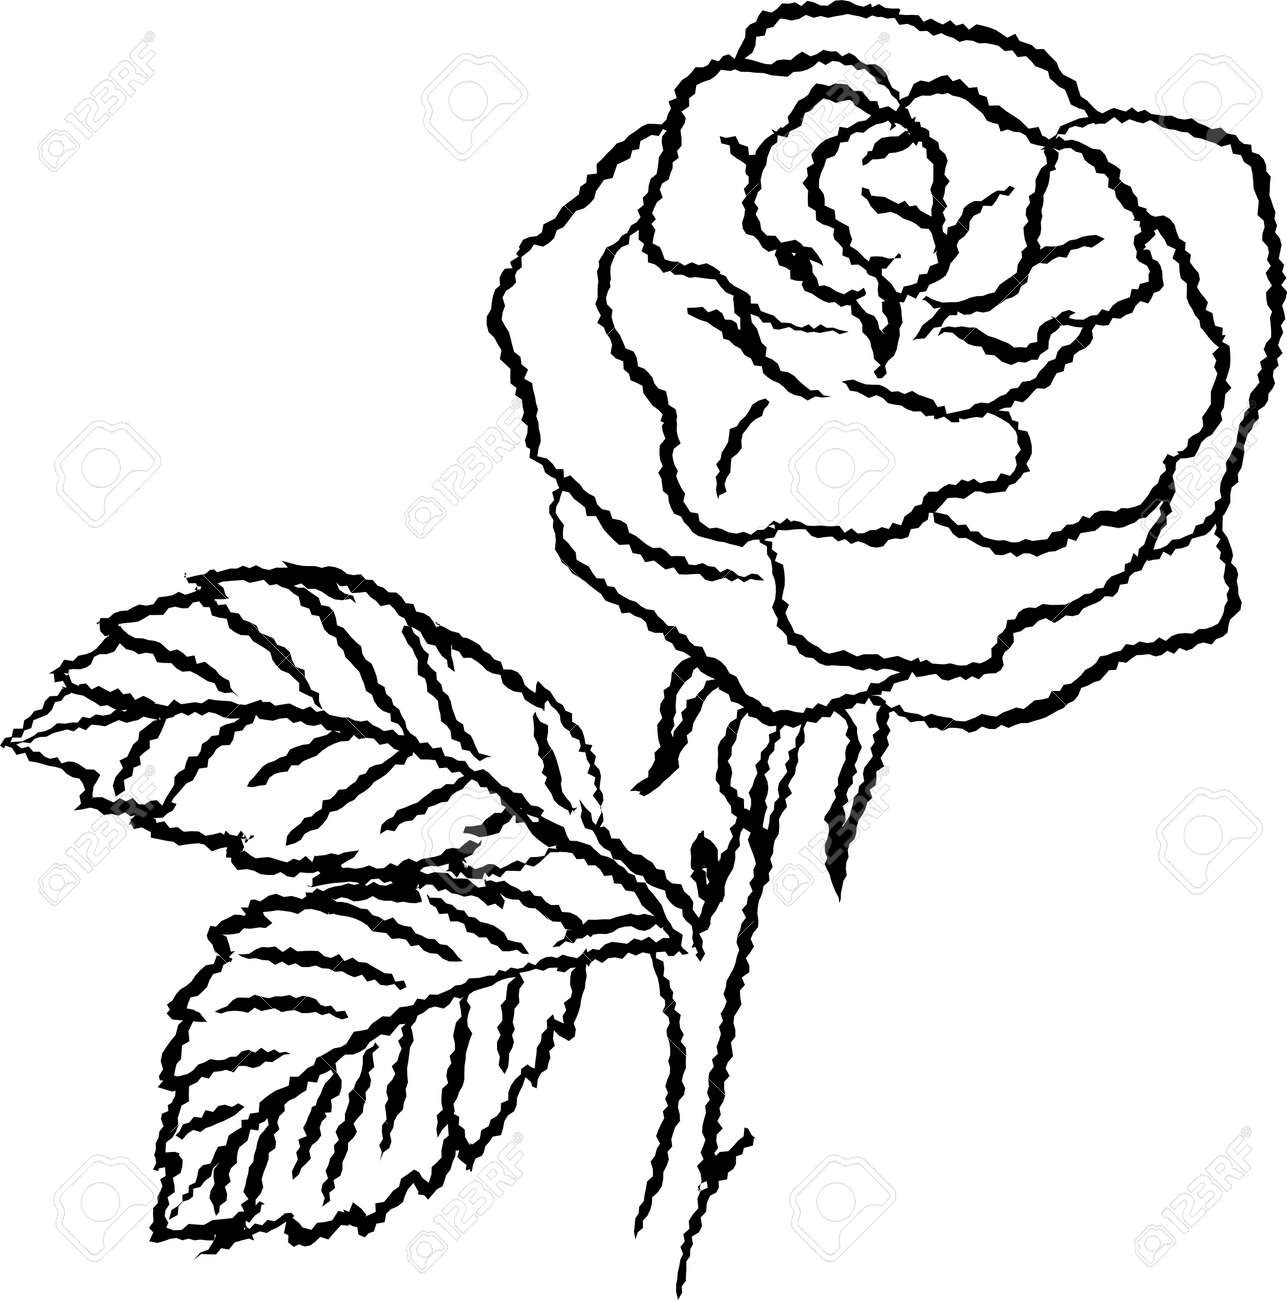 Hand Drawn Sketch Of Rose Isolated, Black And White Cartoon Vector ...